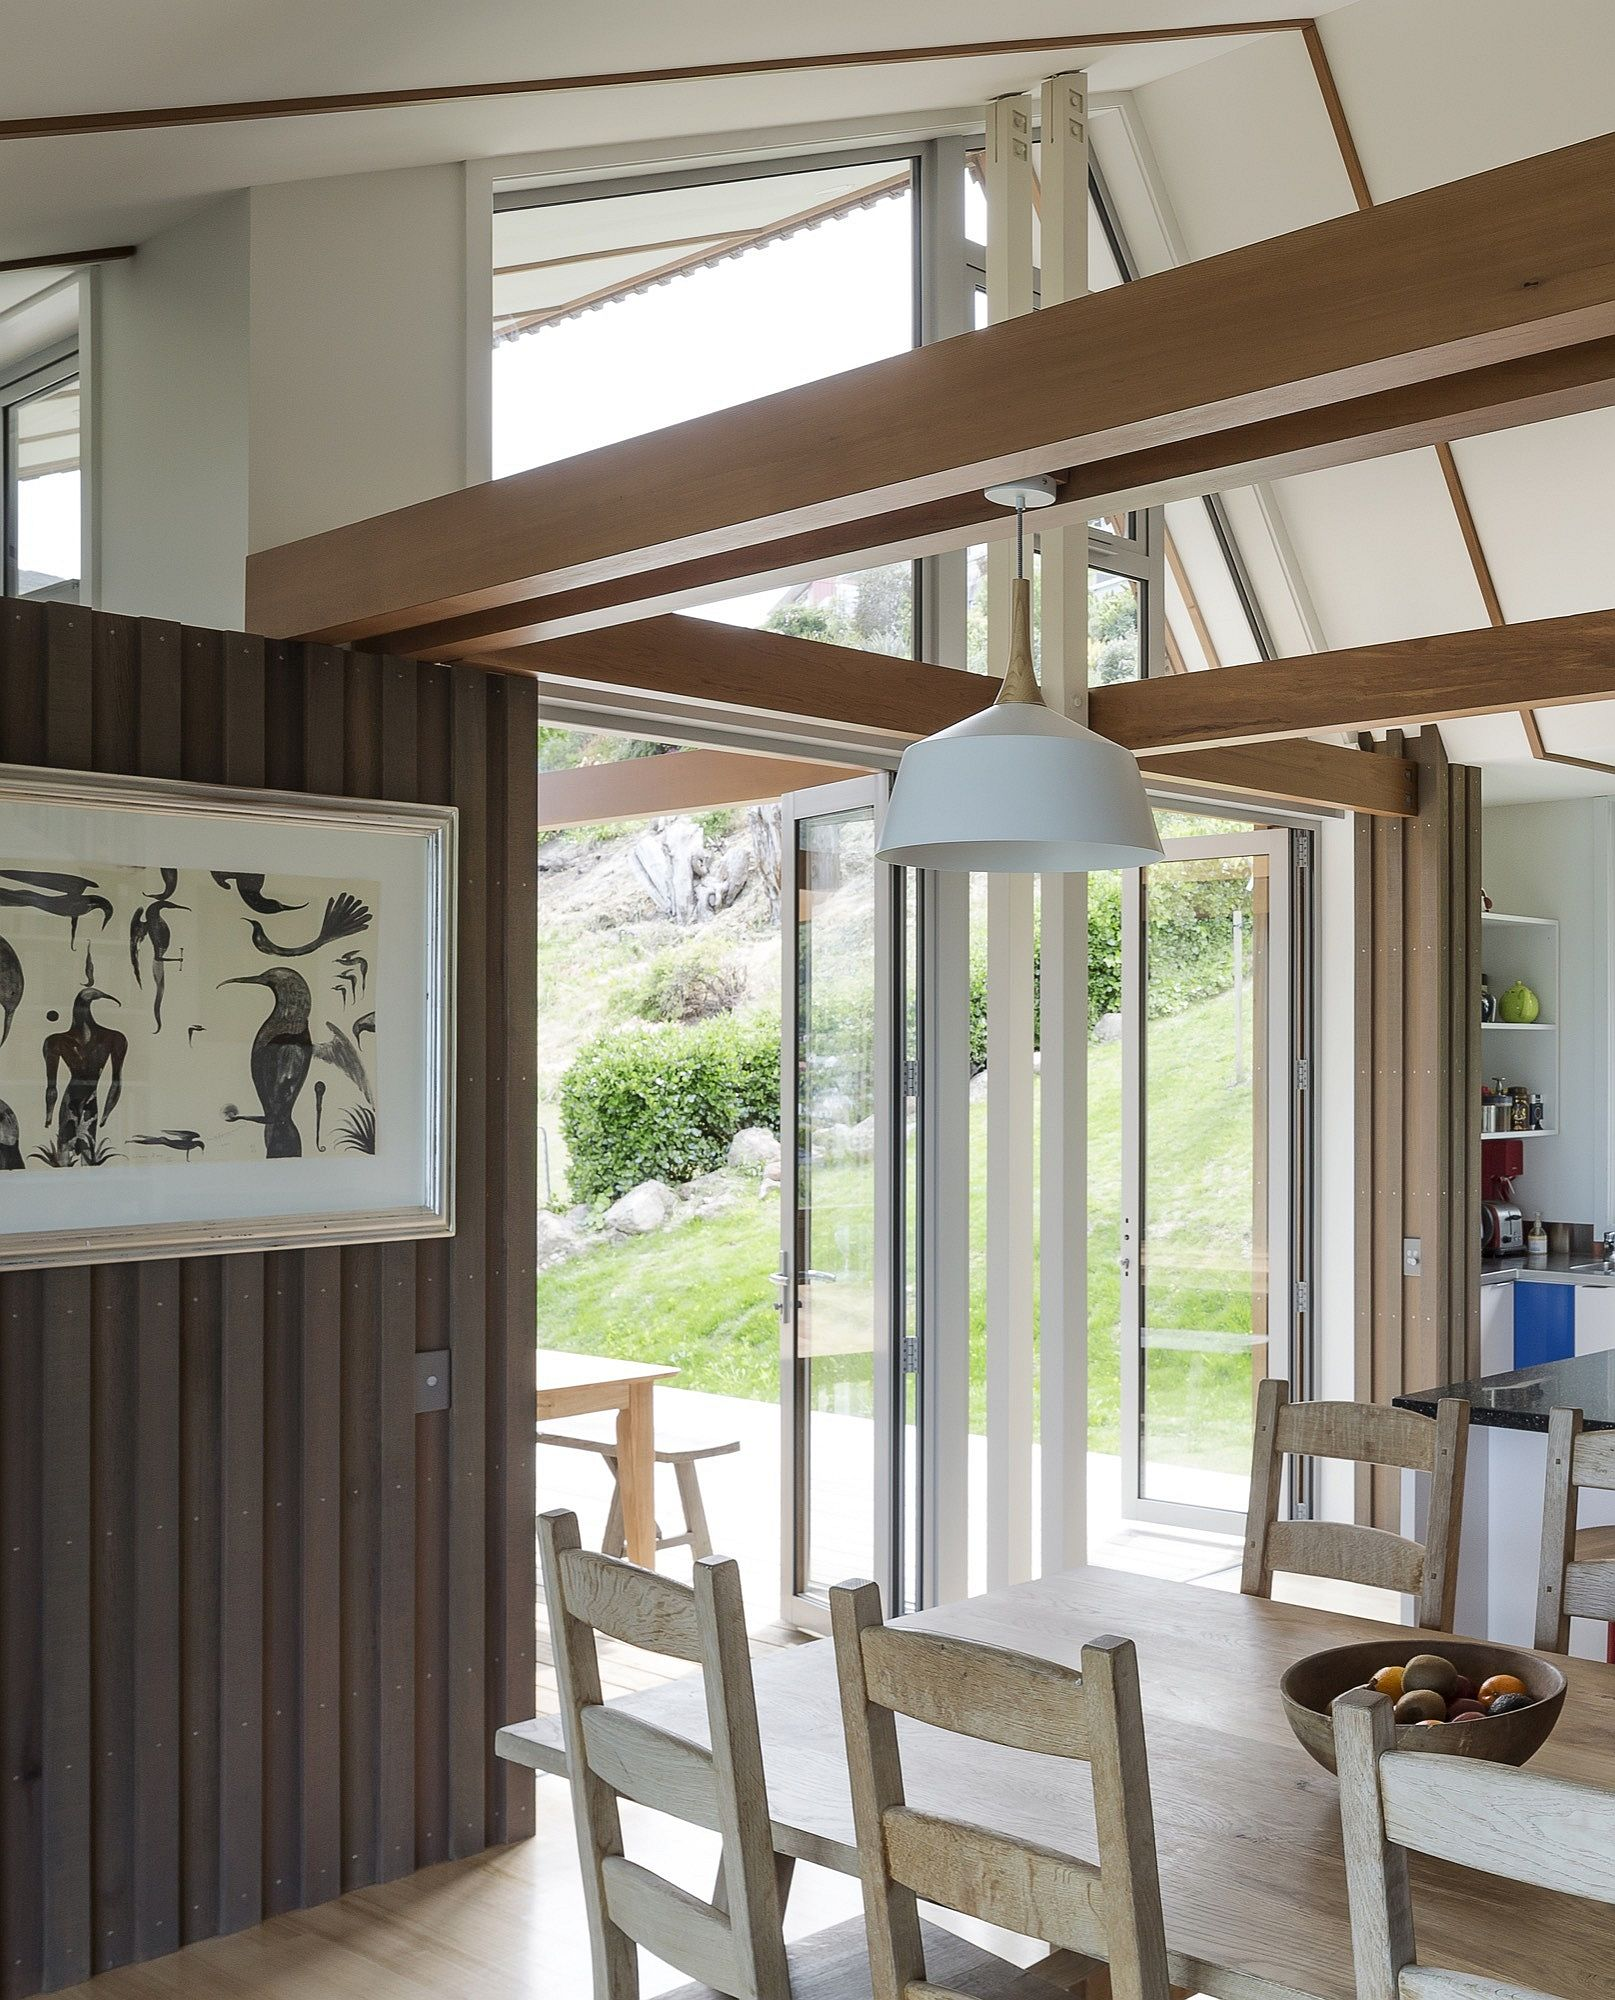 Timber beams of the original villa grace the new house